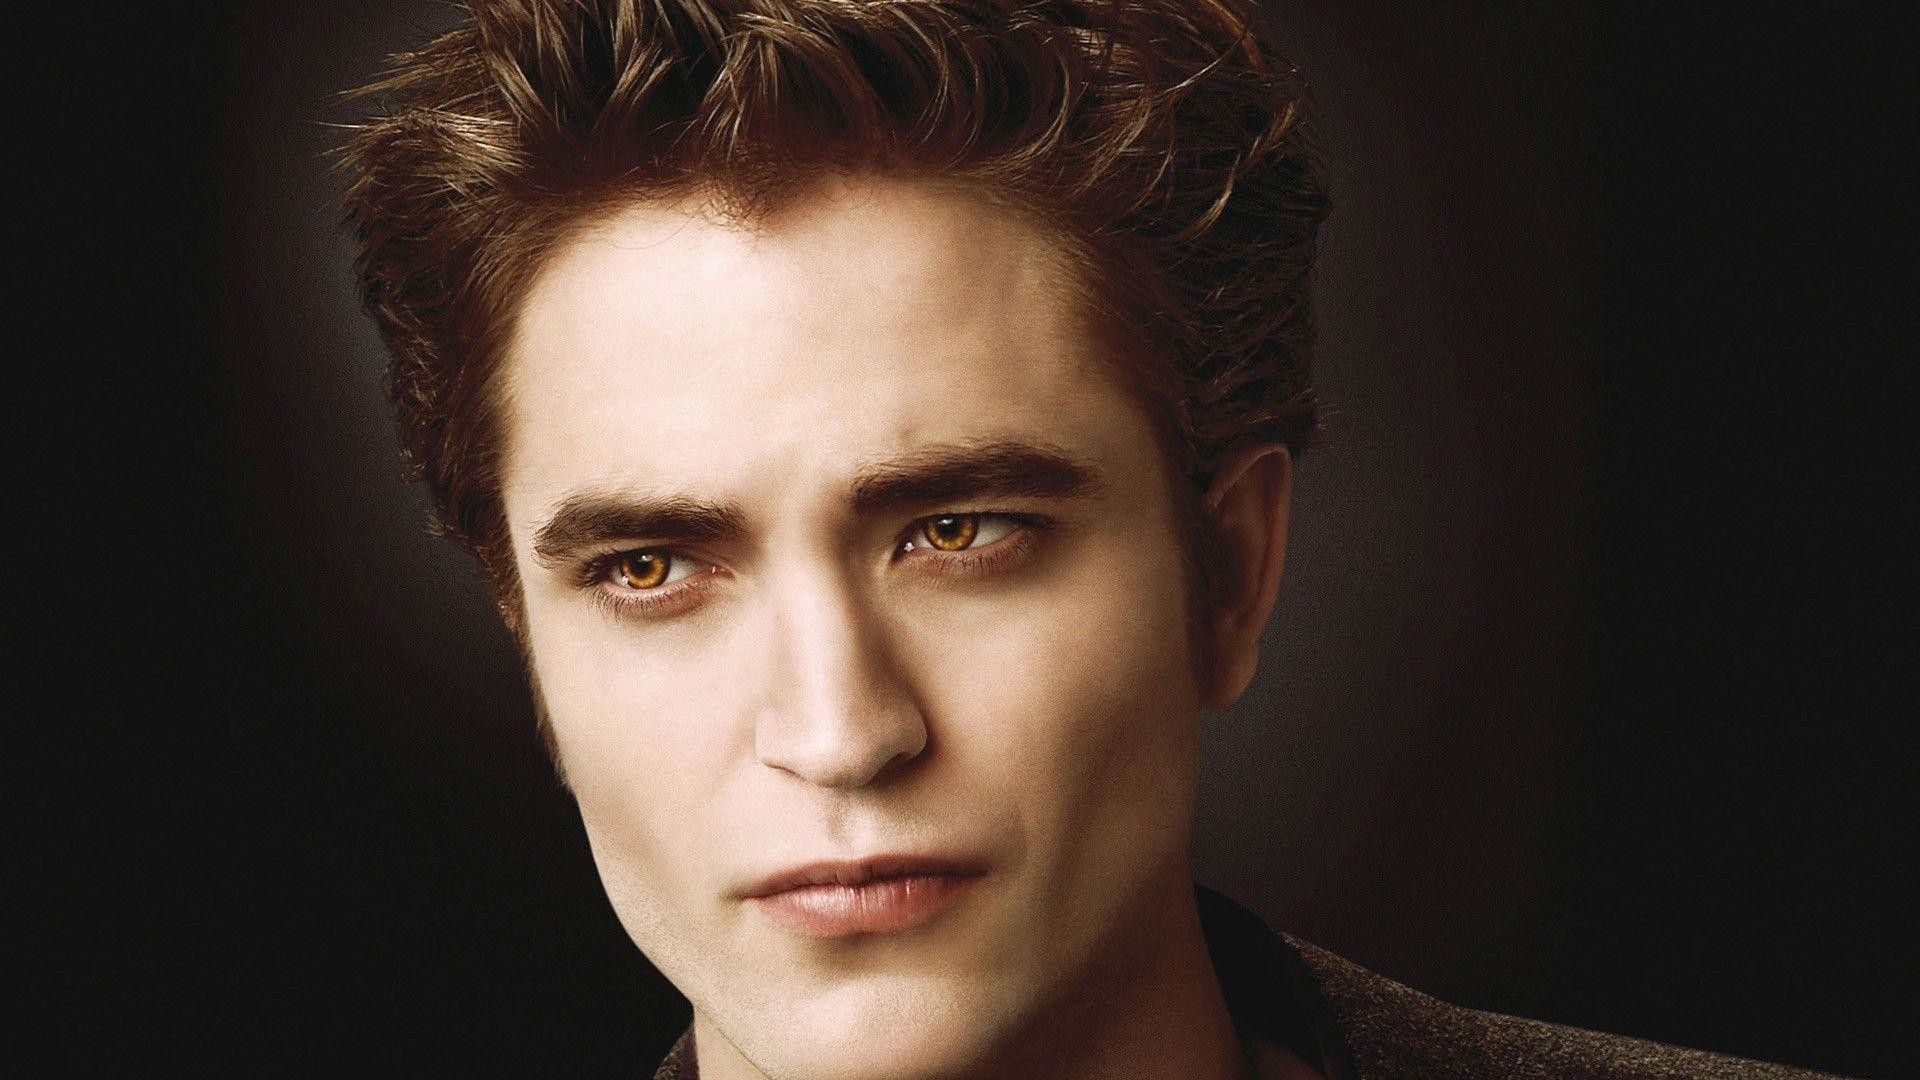 Edward Cullen Backgrounds 60 Images